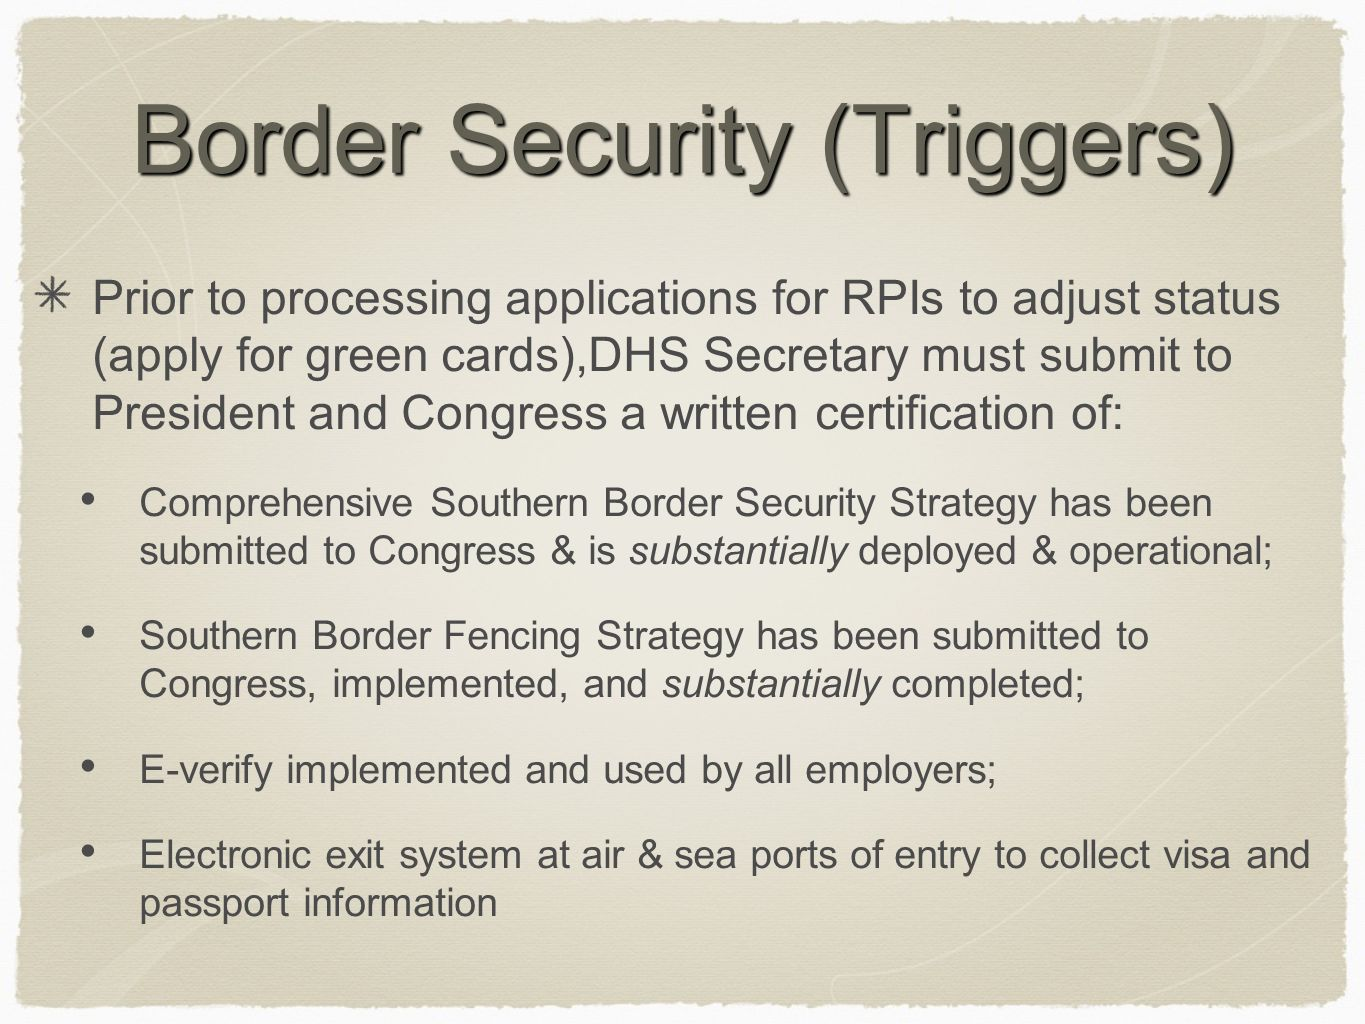 Border Security (Triggers) Prior to processing applications for RPIs to adjust status (apply for green cards),DHS Secretary must submit to President and Congress a written certification of: Comprehensive Southern Border Security Strategy has been submitted to Congress & is substantially deployed & operational; Southern Border Fencing Strategy has been submitted to Congress, implemented, and substantially completed; E-verify implemented and used by all employers; Electronic exit system at air & sea ports of entry to collect visa and passport information